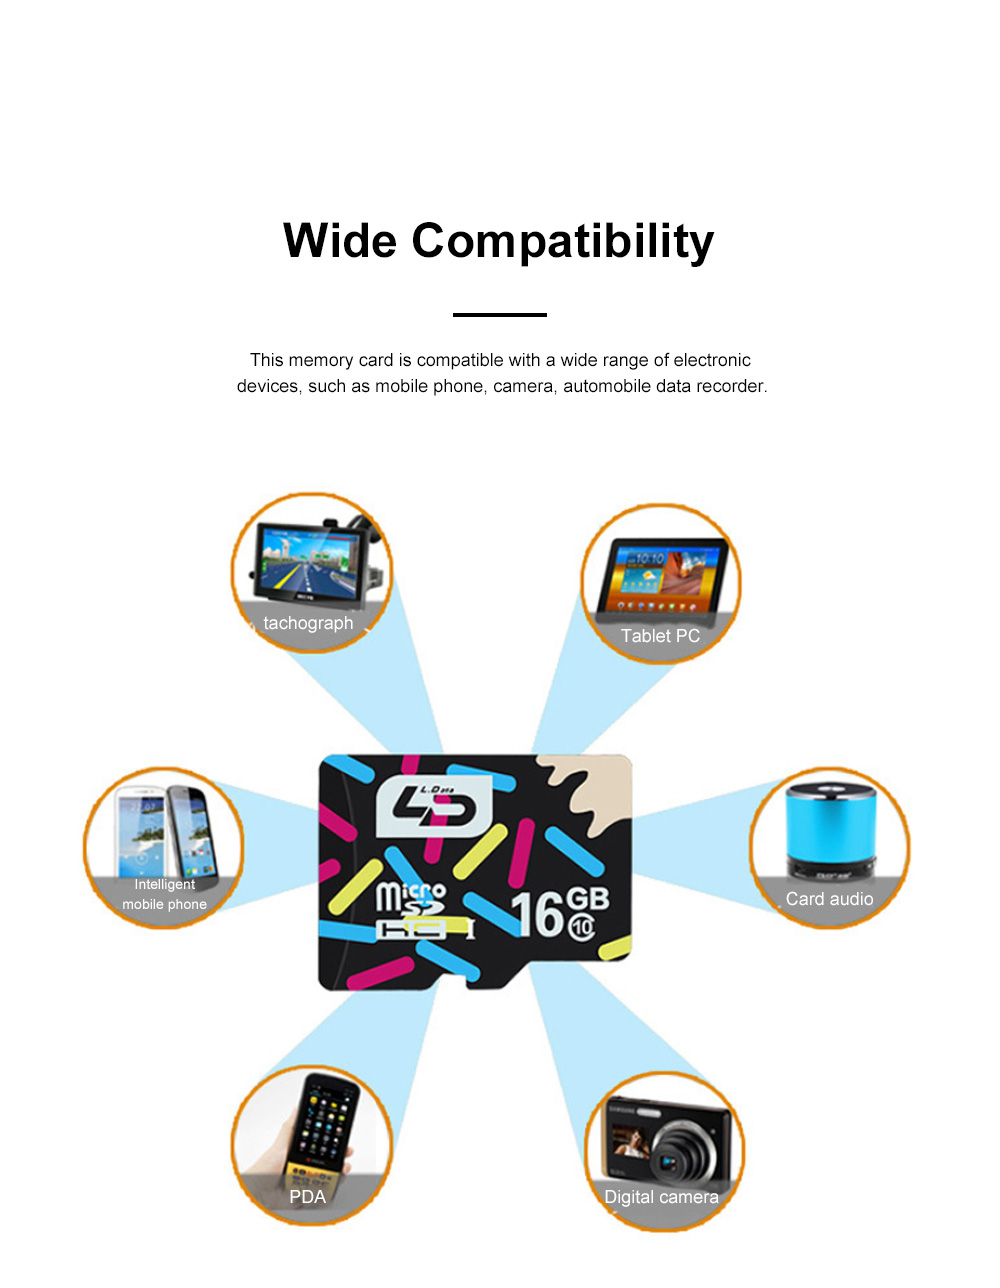 Waterproof Fast-Speed Micro SD Card Mobile Phone Tablet Computer Automobile Data Recorder Memory Card 1